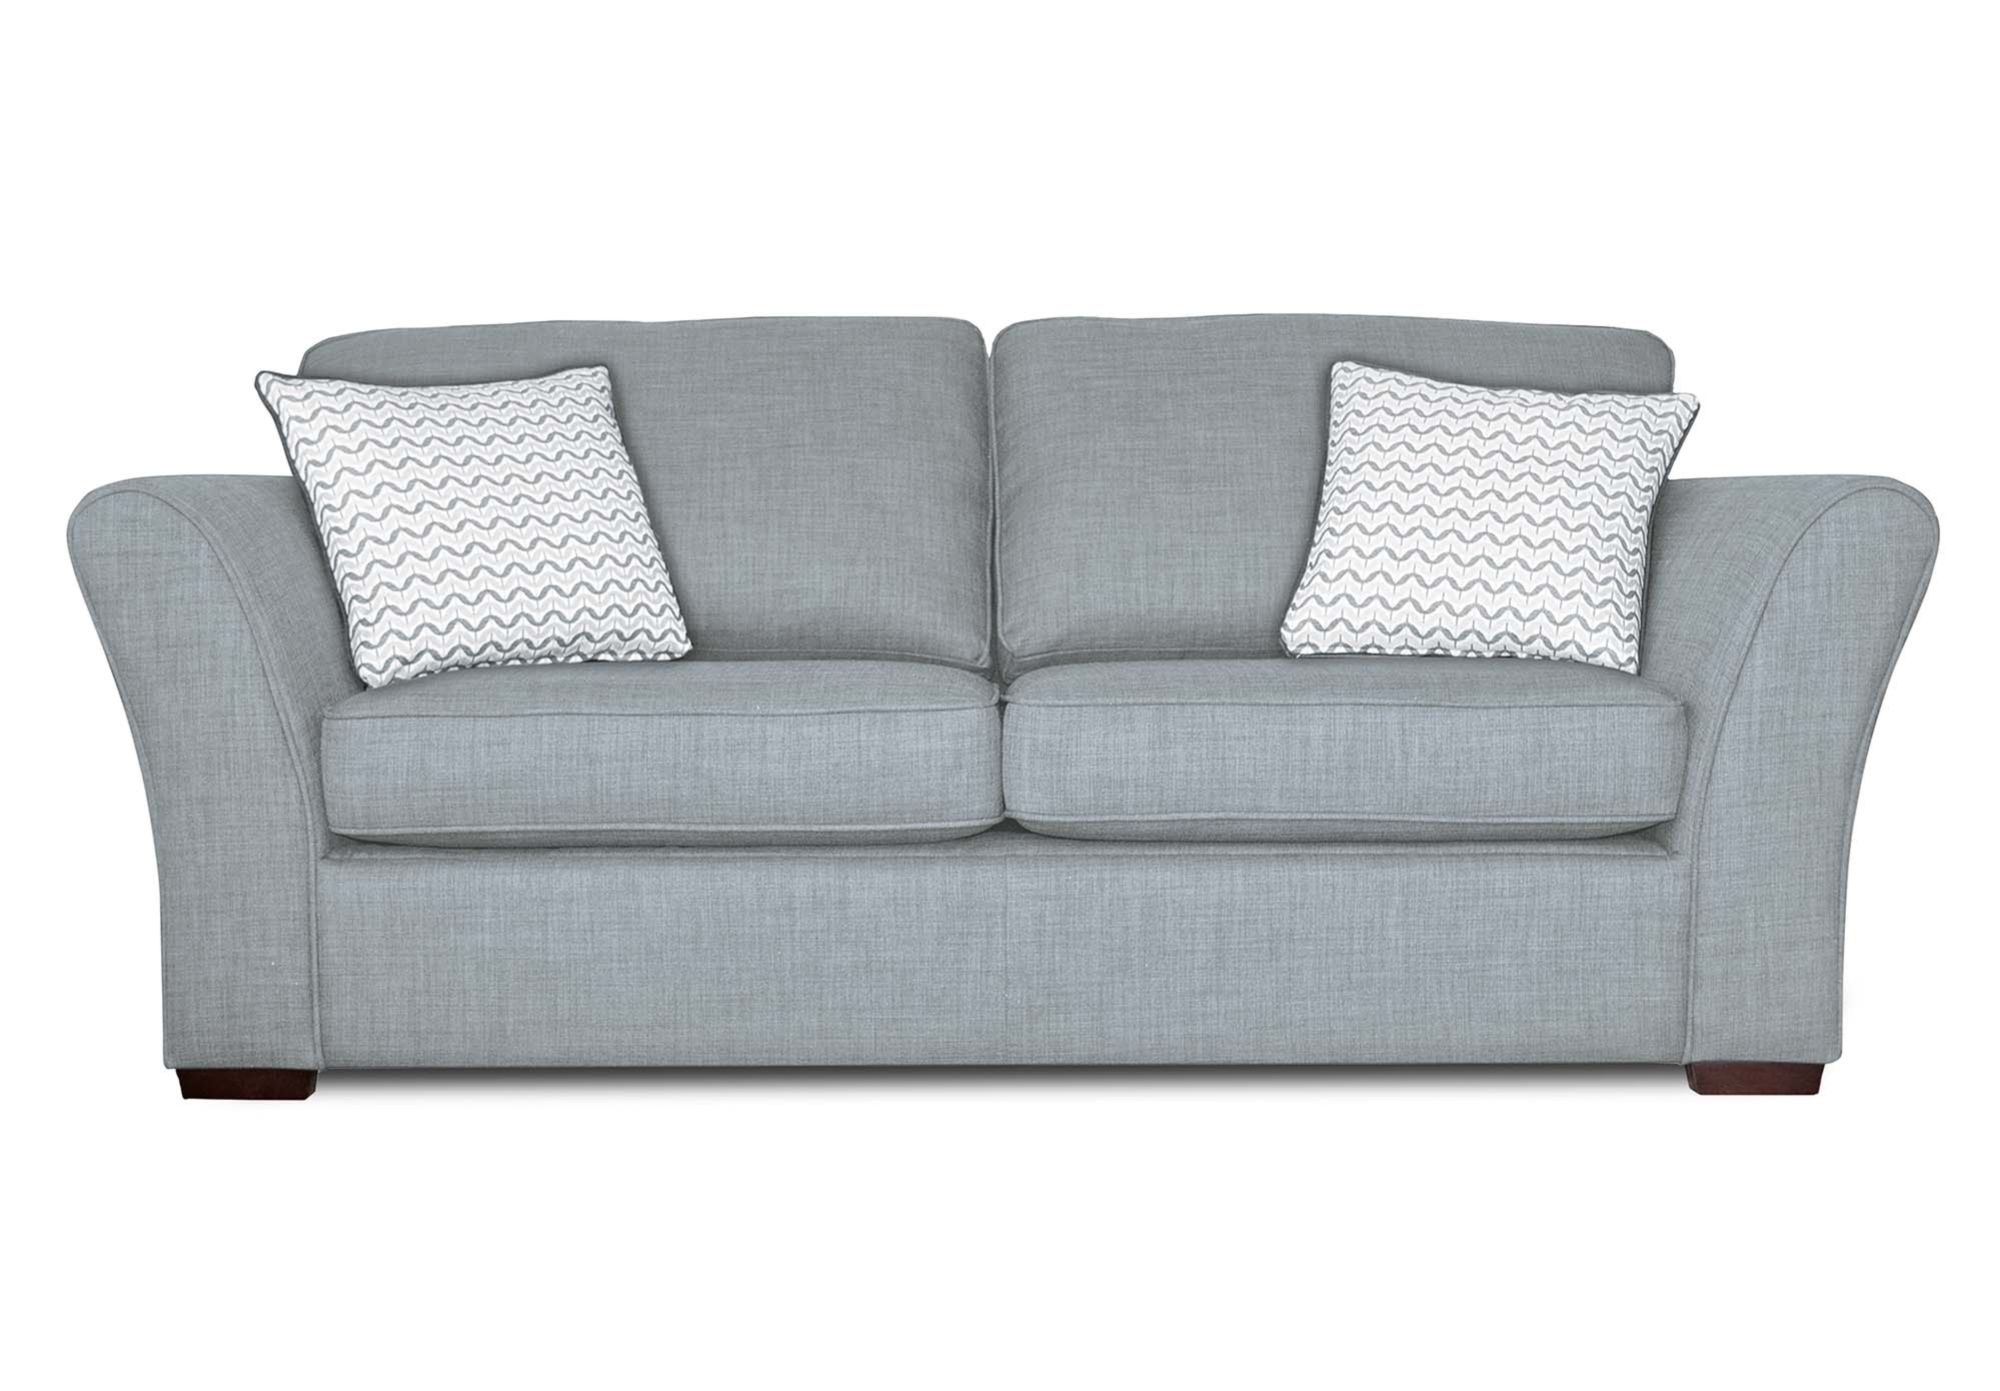 boardwalk corner sofa furniture village small grey fabric the beds brokeasshome